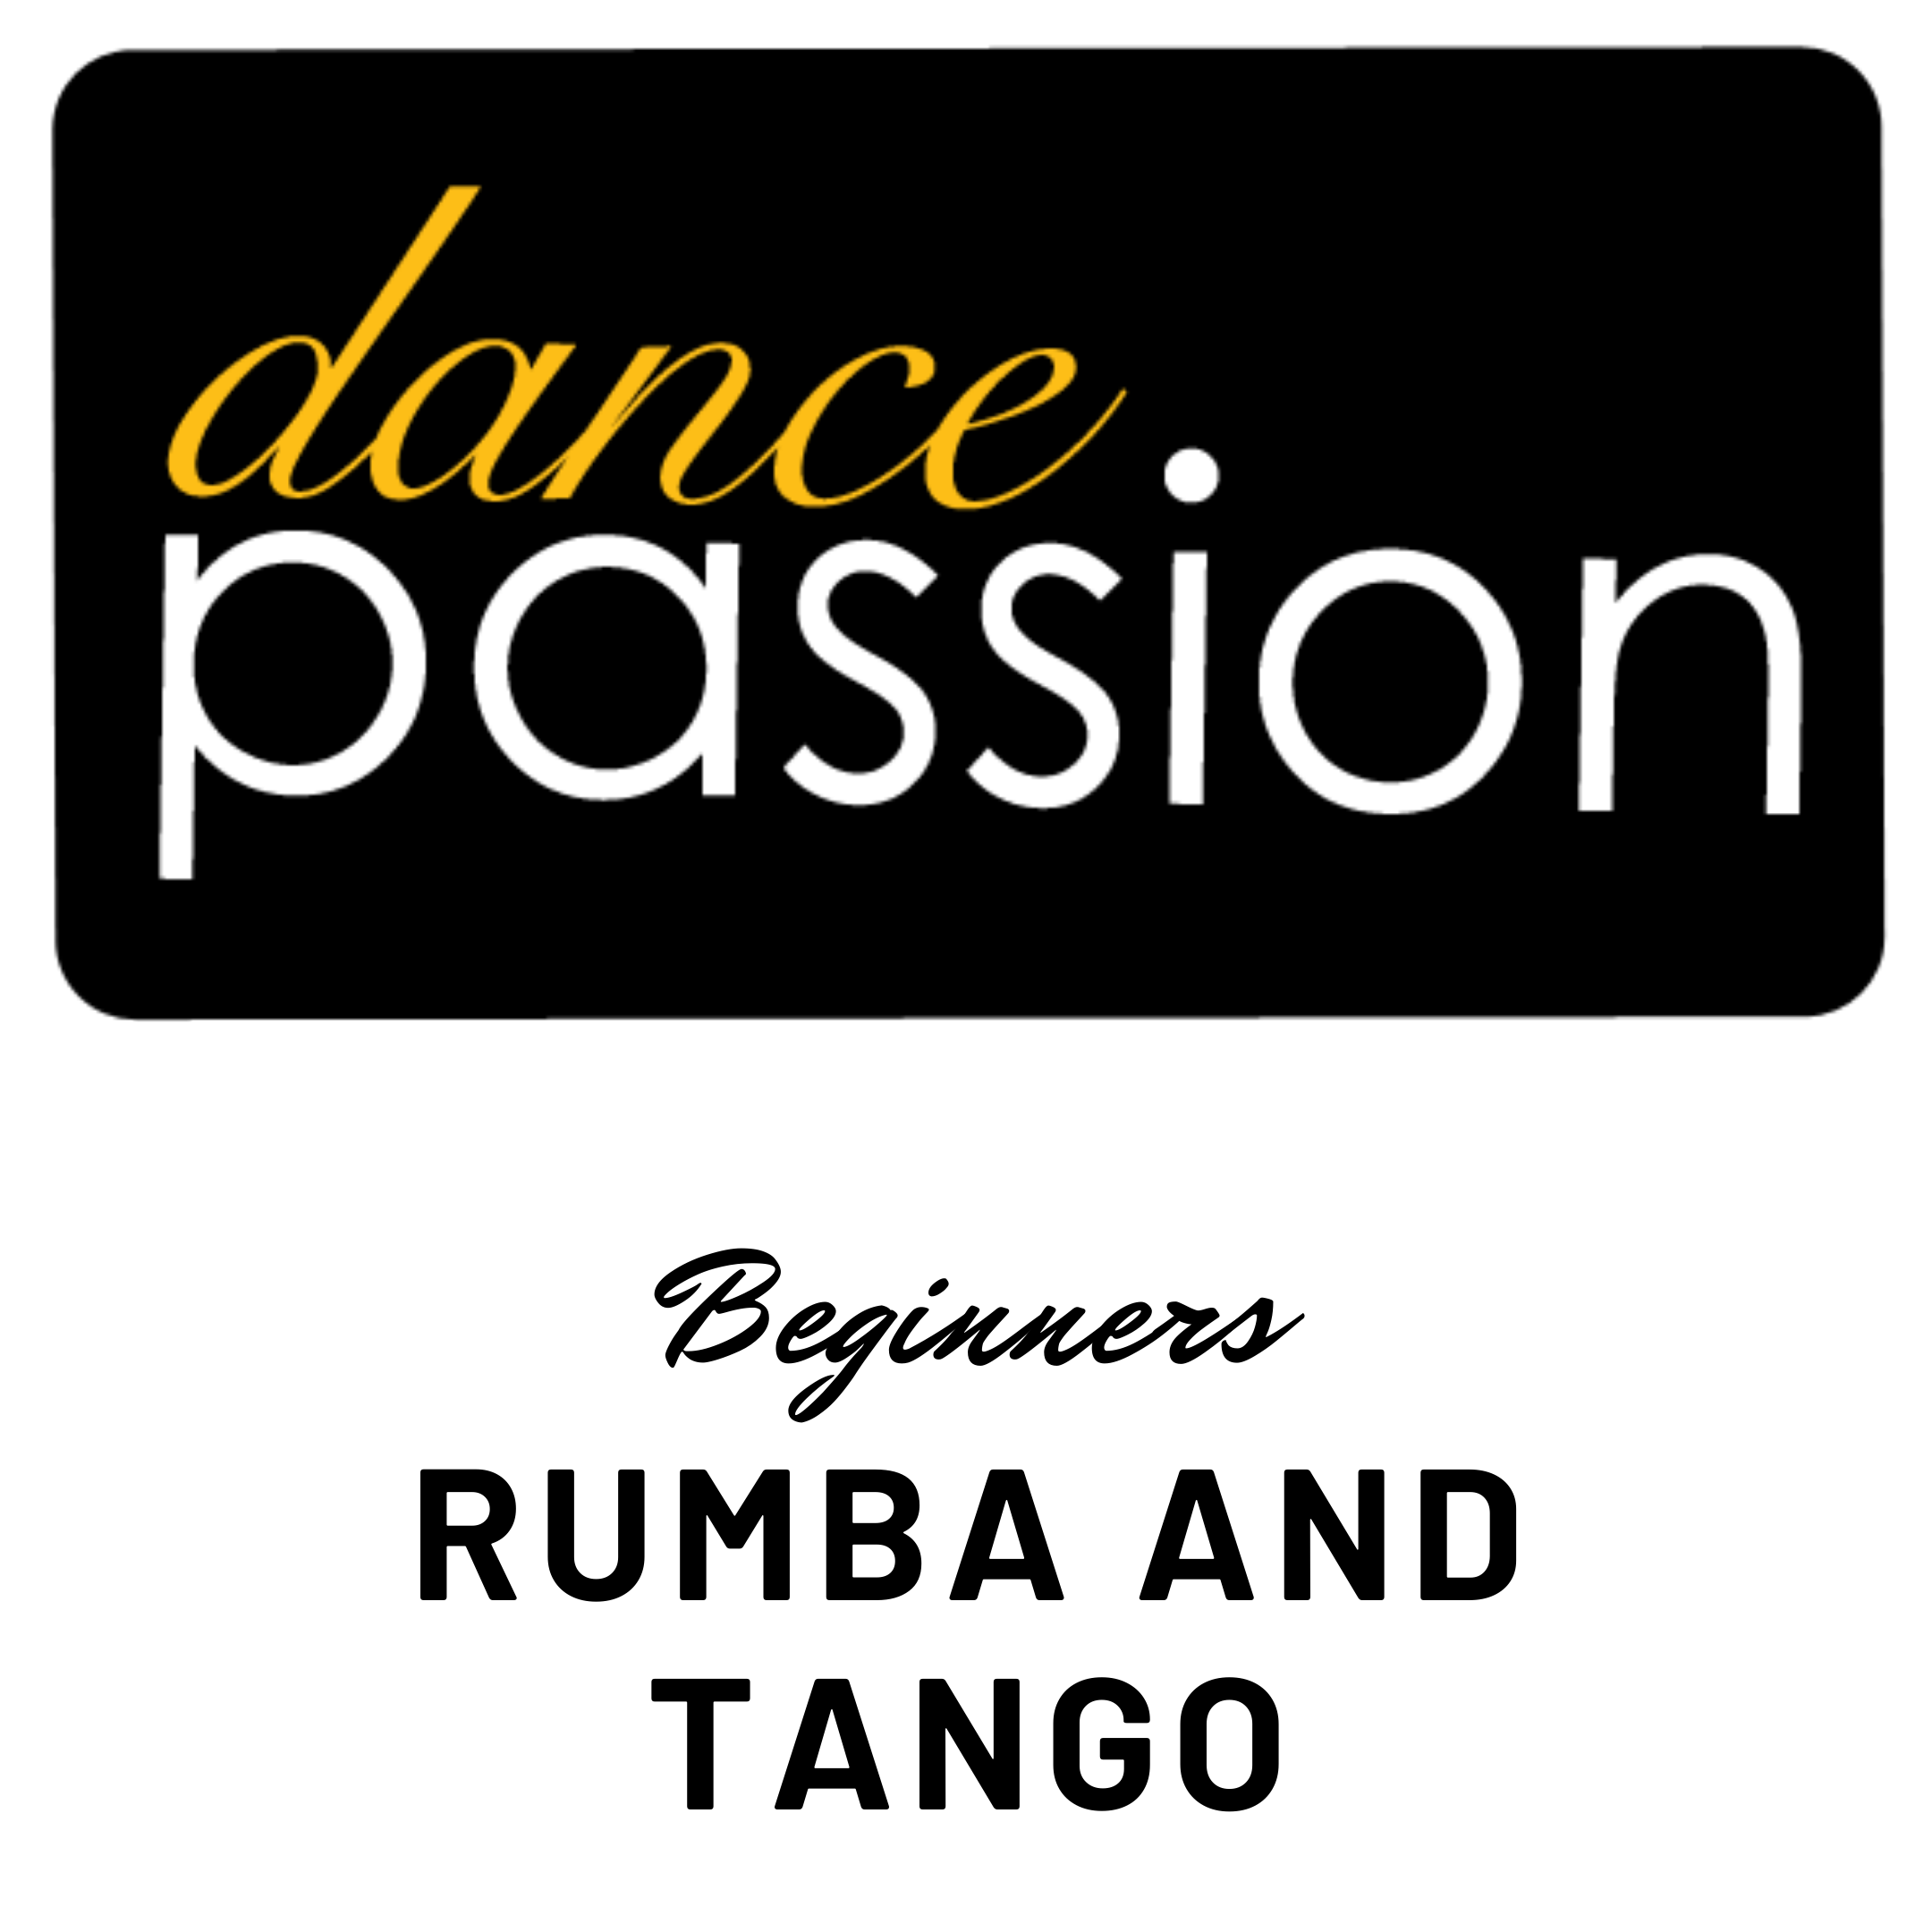 Beginners - Rumba and Tango